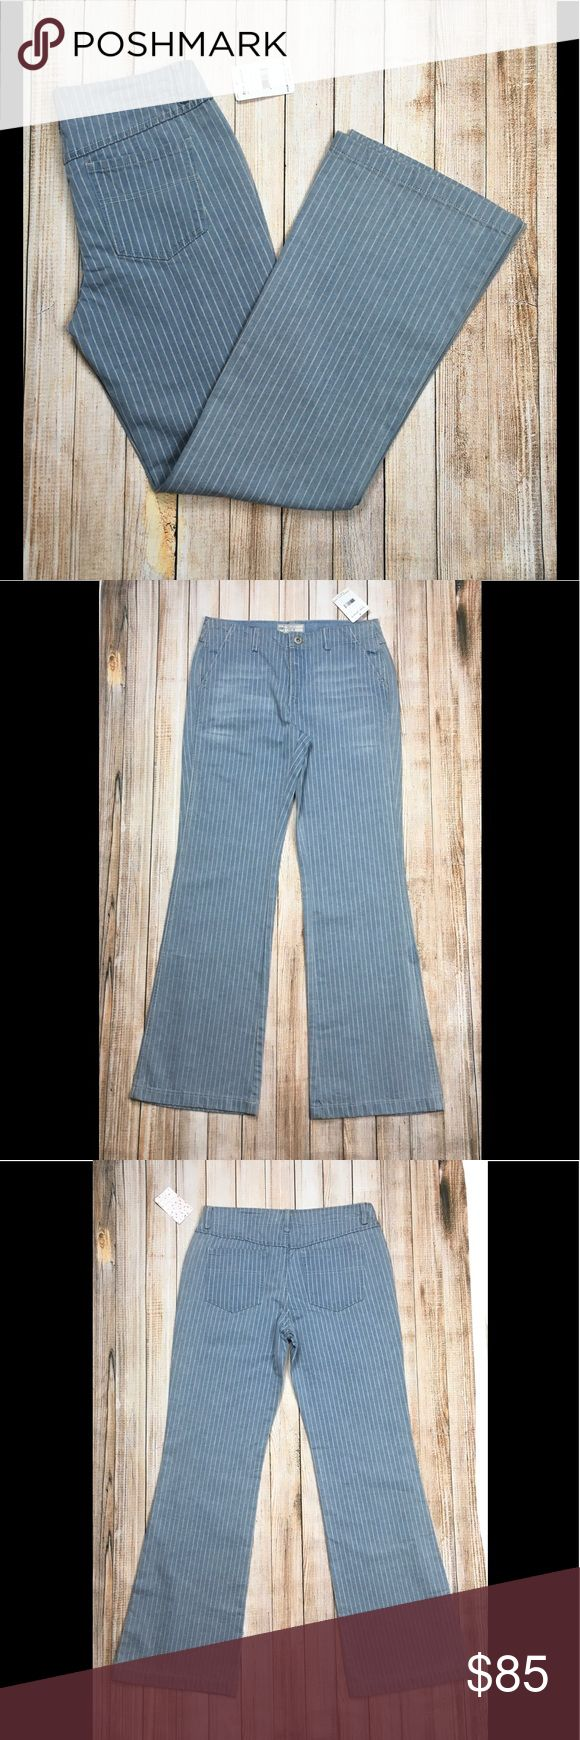 """Free People pinstripe jeans NWT Free People pinstripe jeans. 💙 these so much! Button fly, 10"""" rise, 16"""" waist, 32"""" length, leg opening 10.5"""" at bottom. Perfect for summer, fall...all year round! Pair with almost any shoe imaginable, a crop top, an oversized sweater, you name it. OFFERS ENCOURAGED!  Tags: boho, stripe, denim, high waisted, casual, weekend, festival Free People Jeans Flare & Wide Leg"""